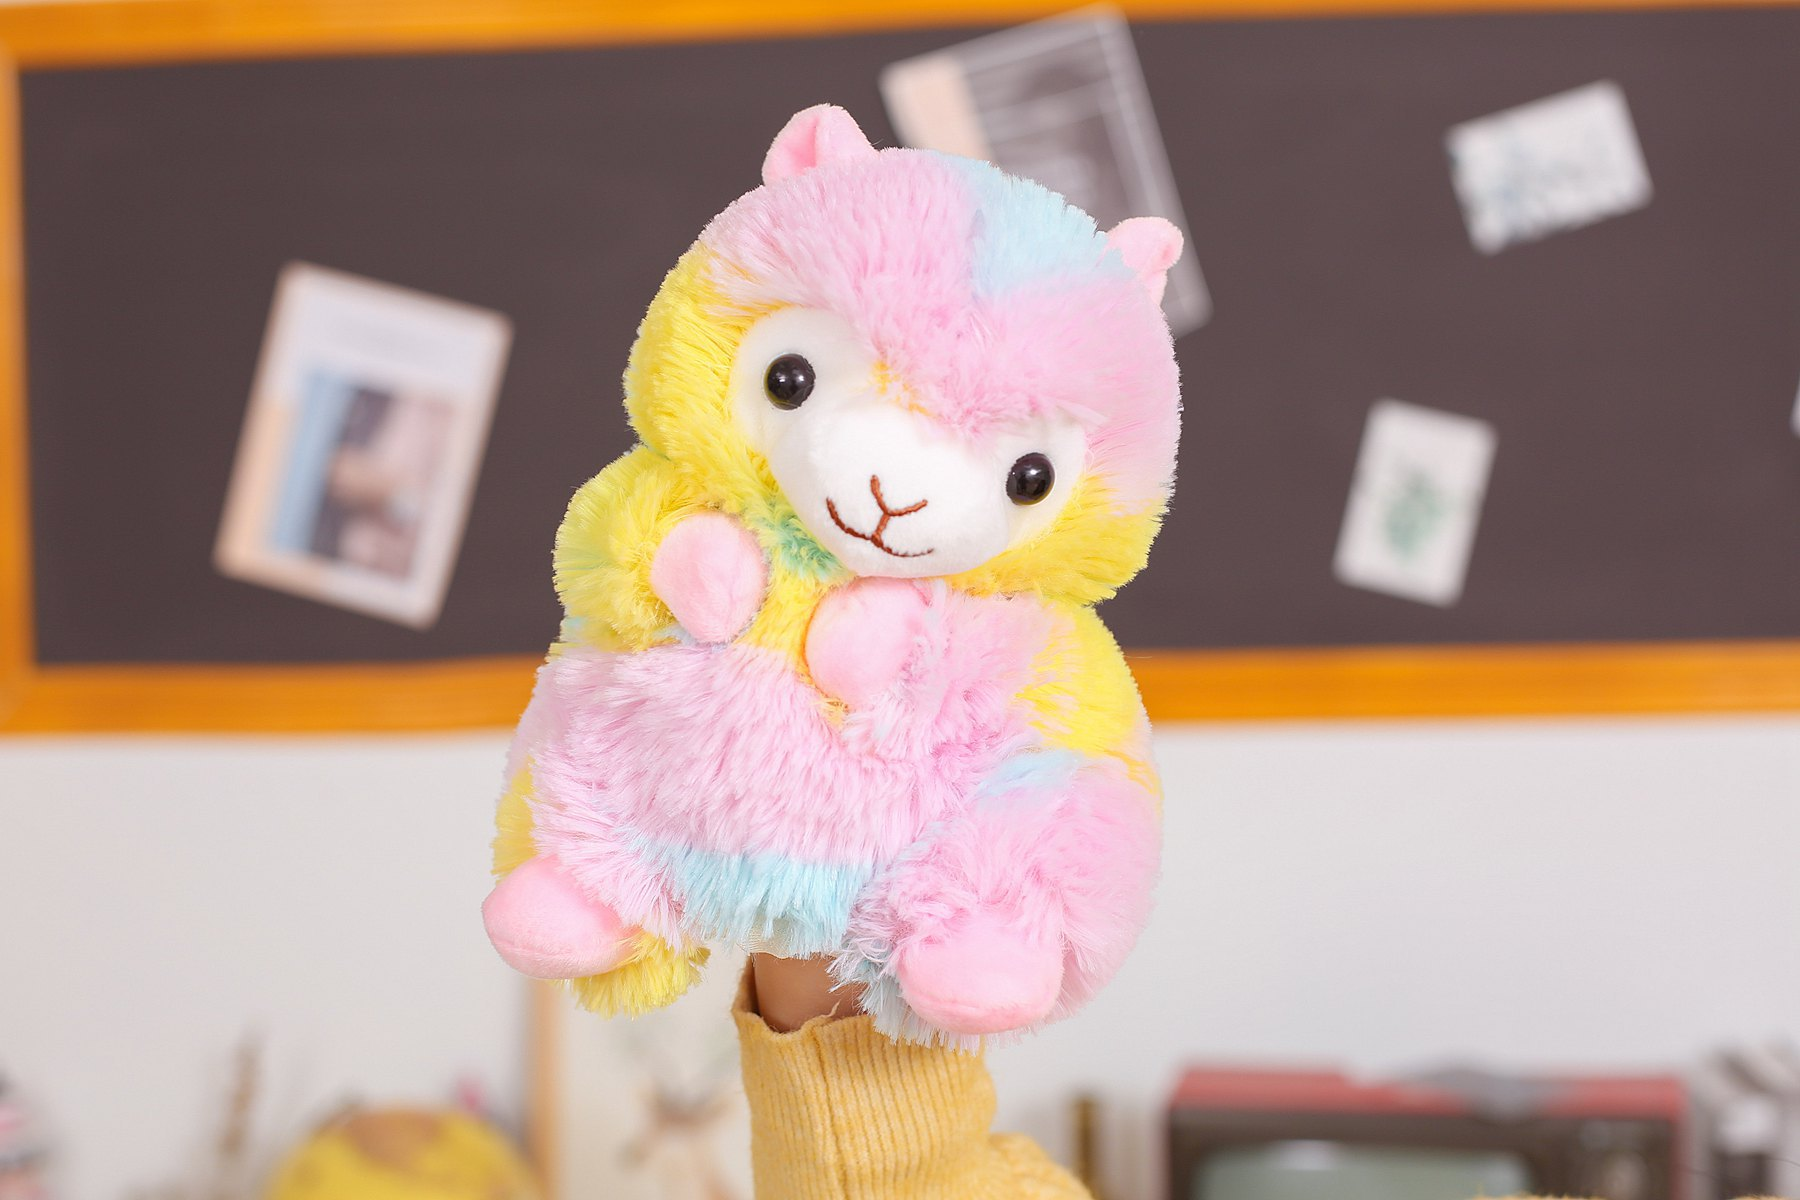 new product educational baby toy rainbow alapaca llama plush hand puppet for tell story